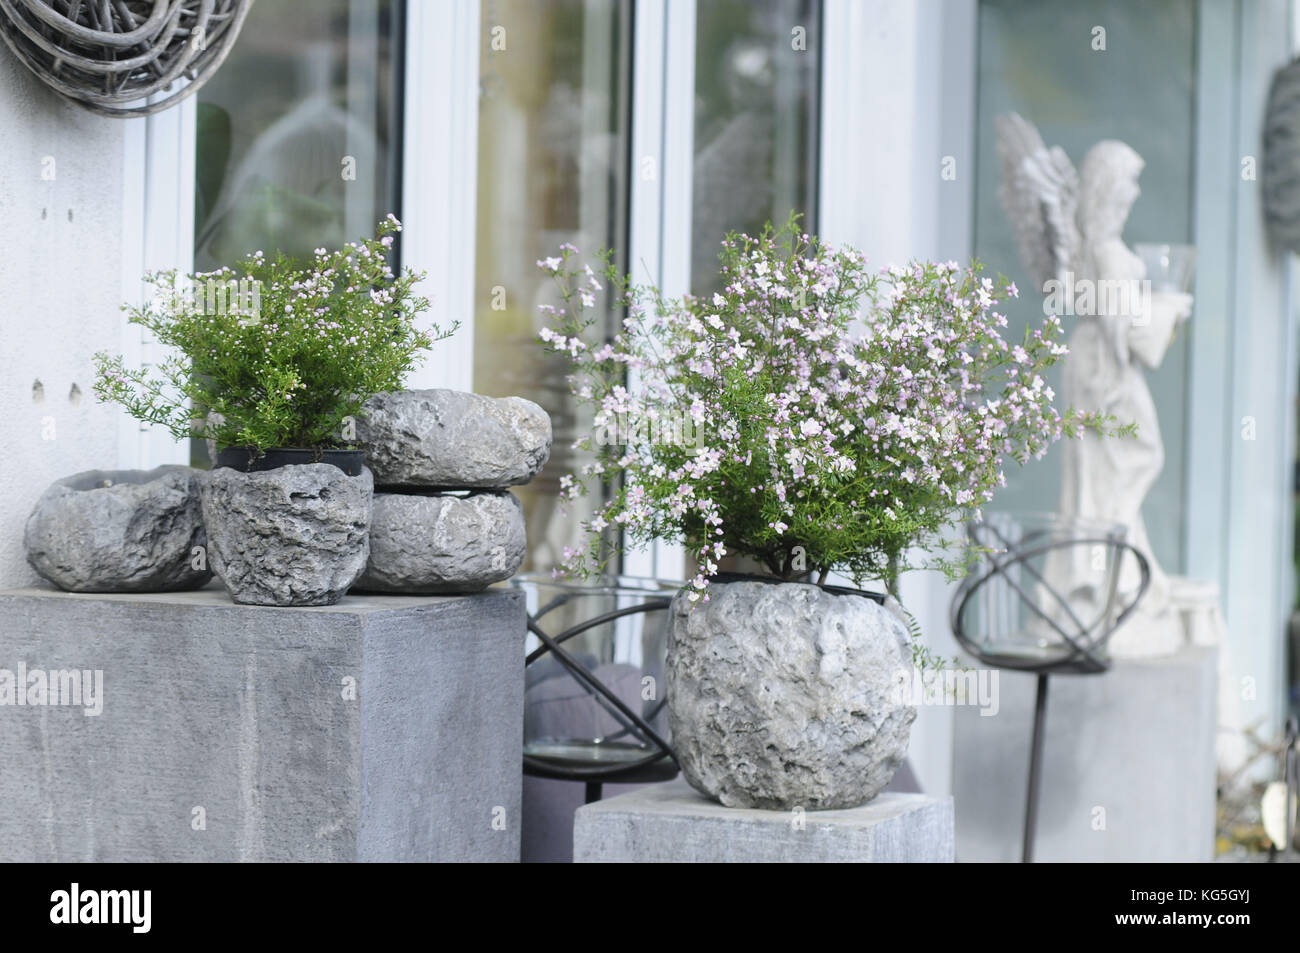 Potted plants in stone pots as garden decoration - Stock Image